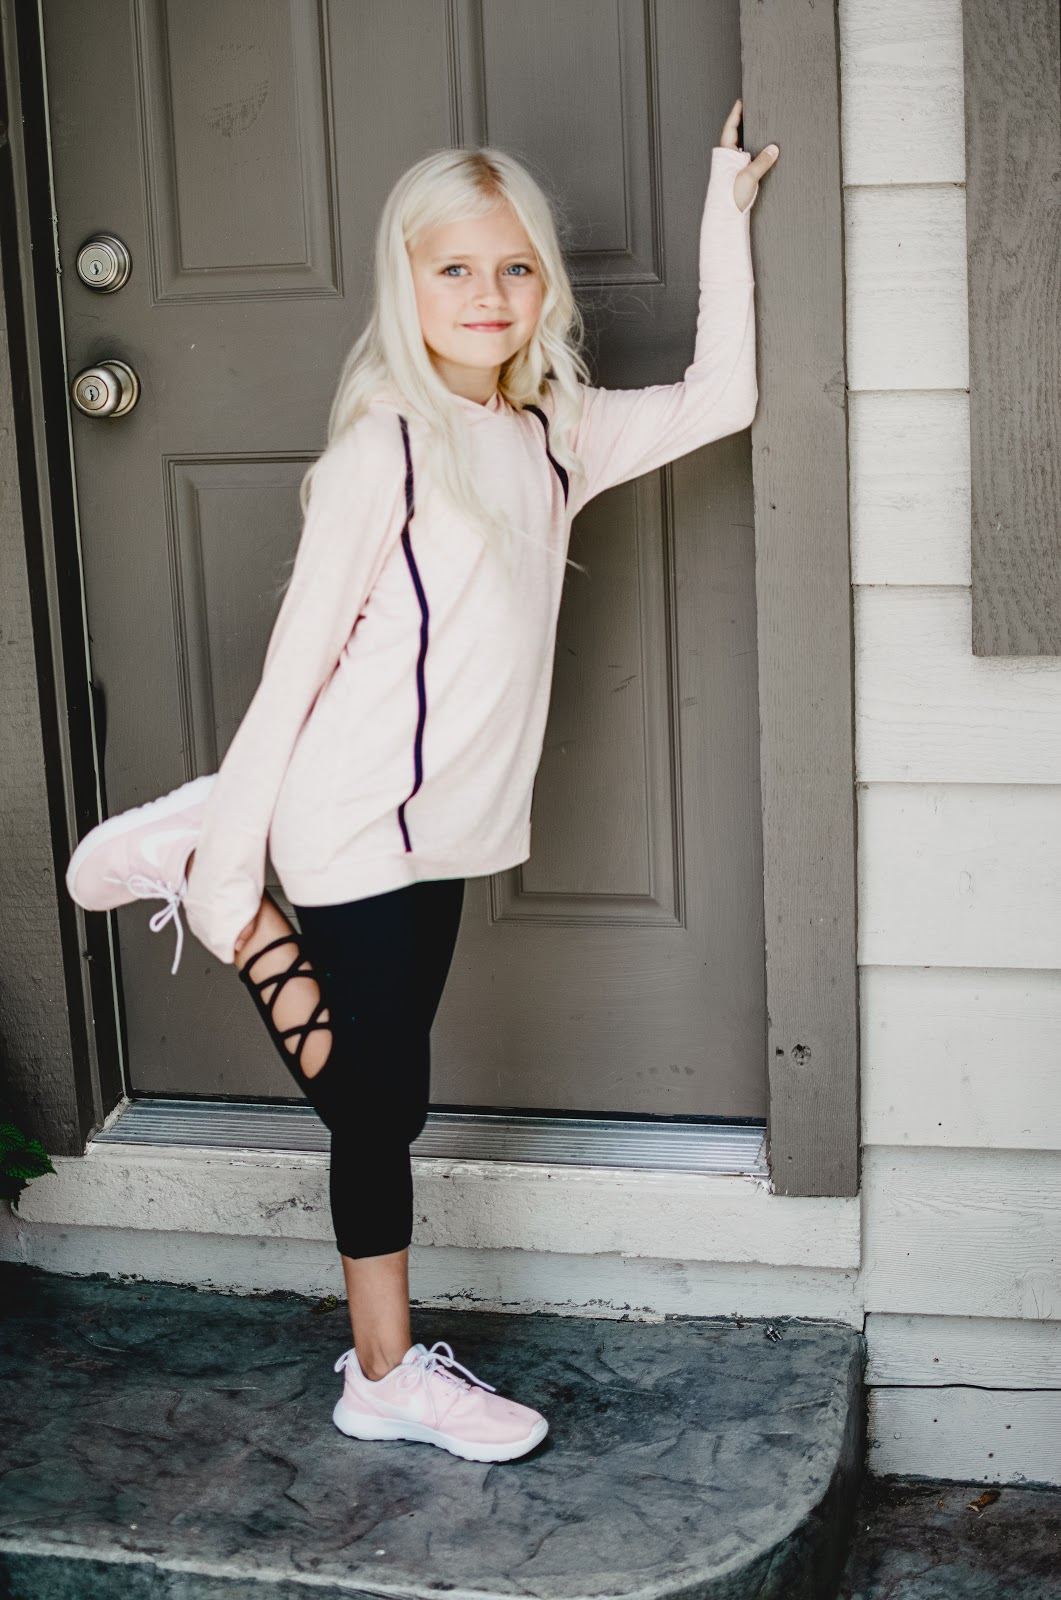 nordstrom sale nordstrom anniversary sale nsale back to school fall outfit ideas little girl womens